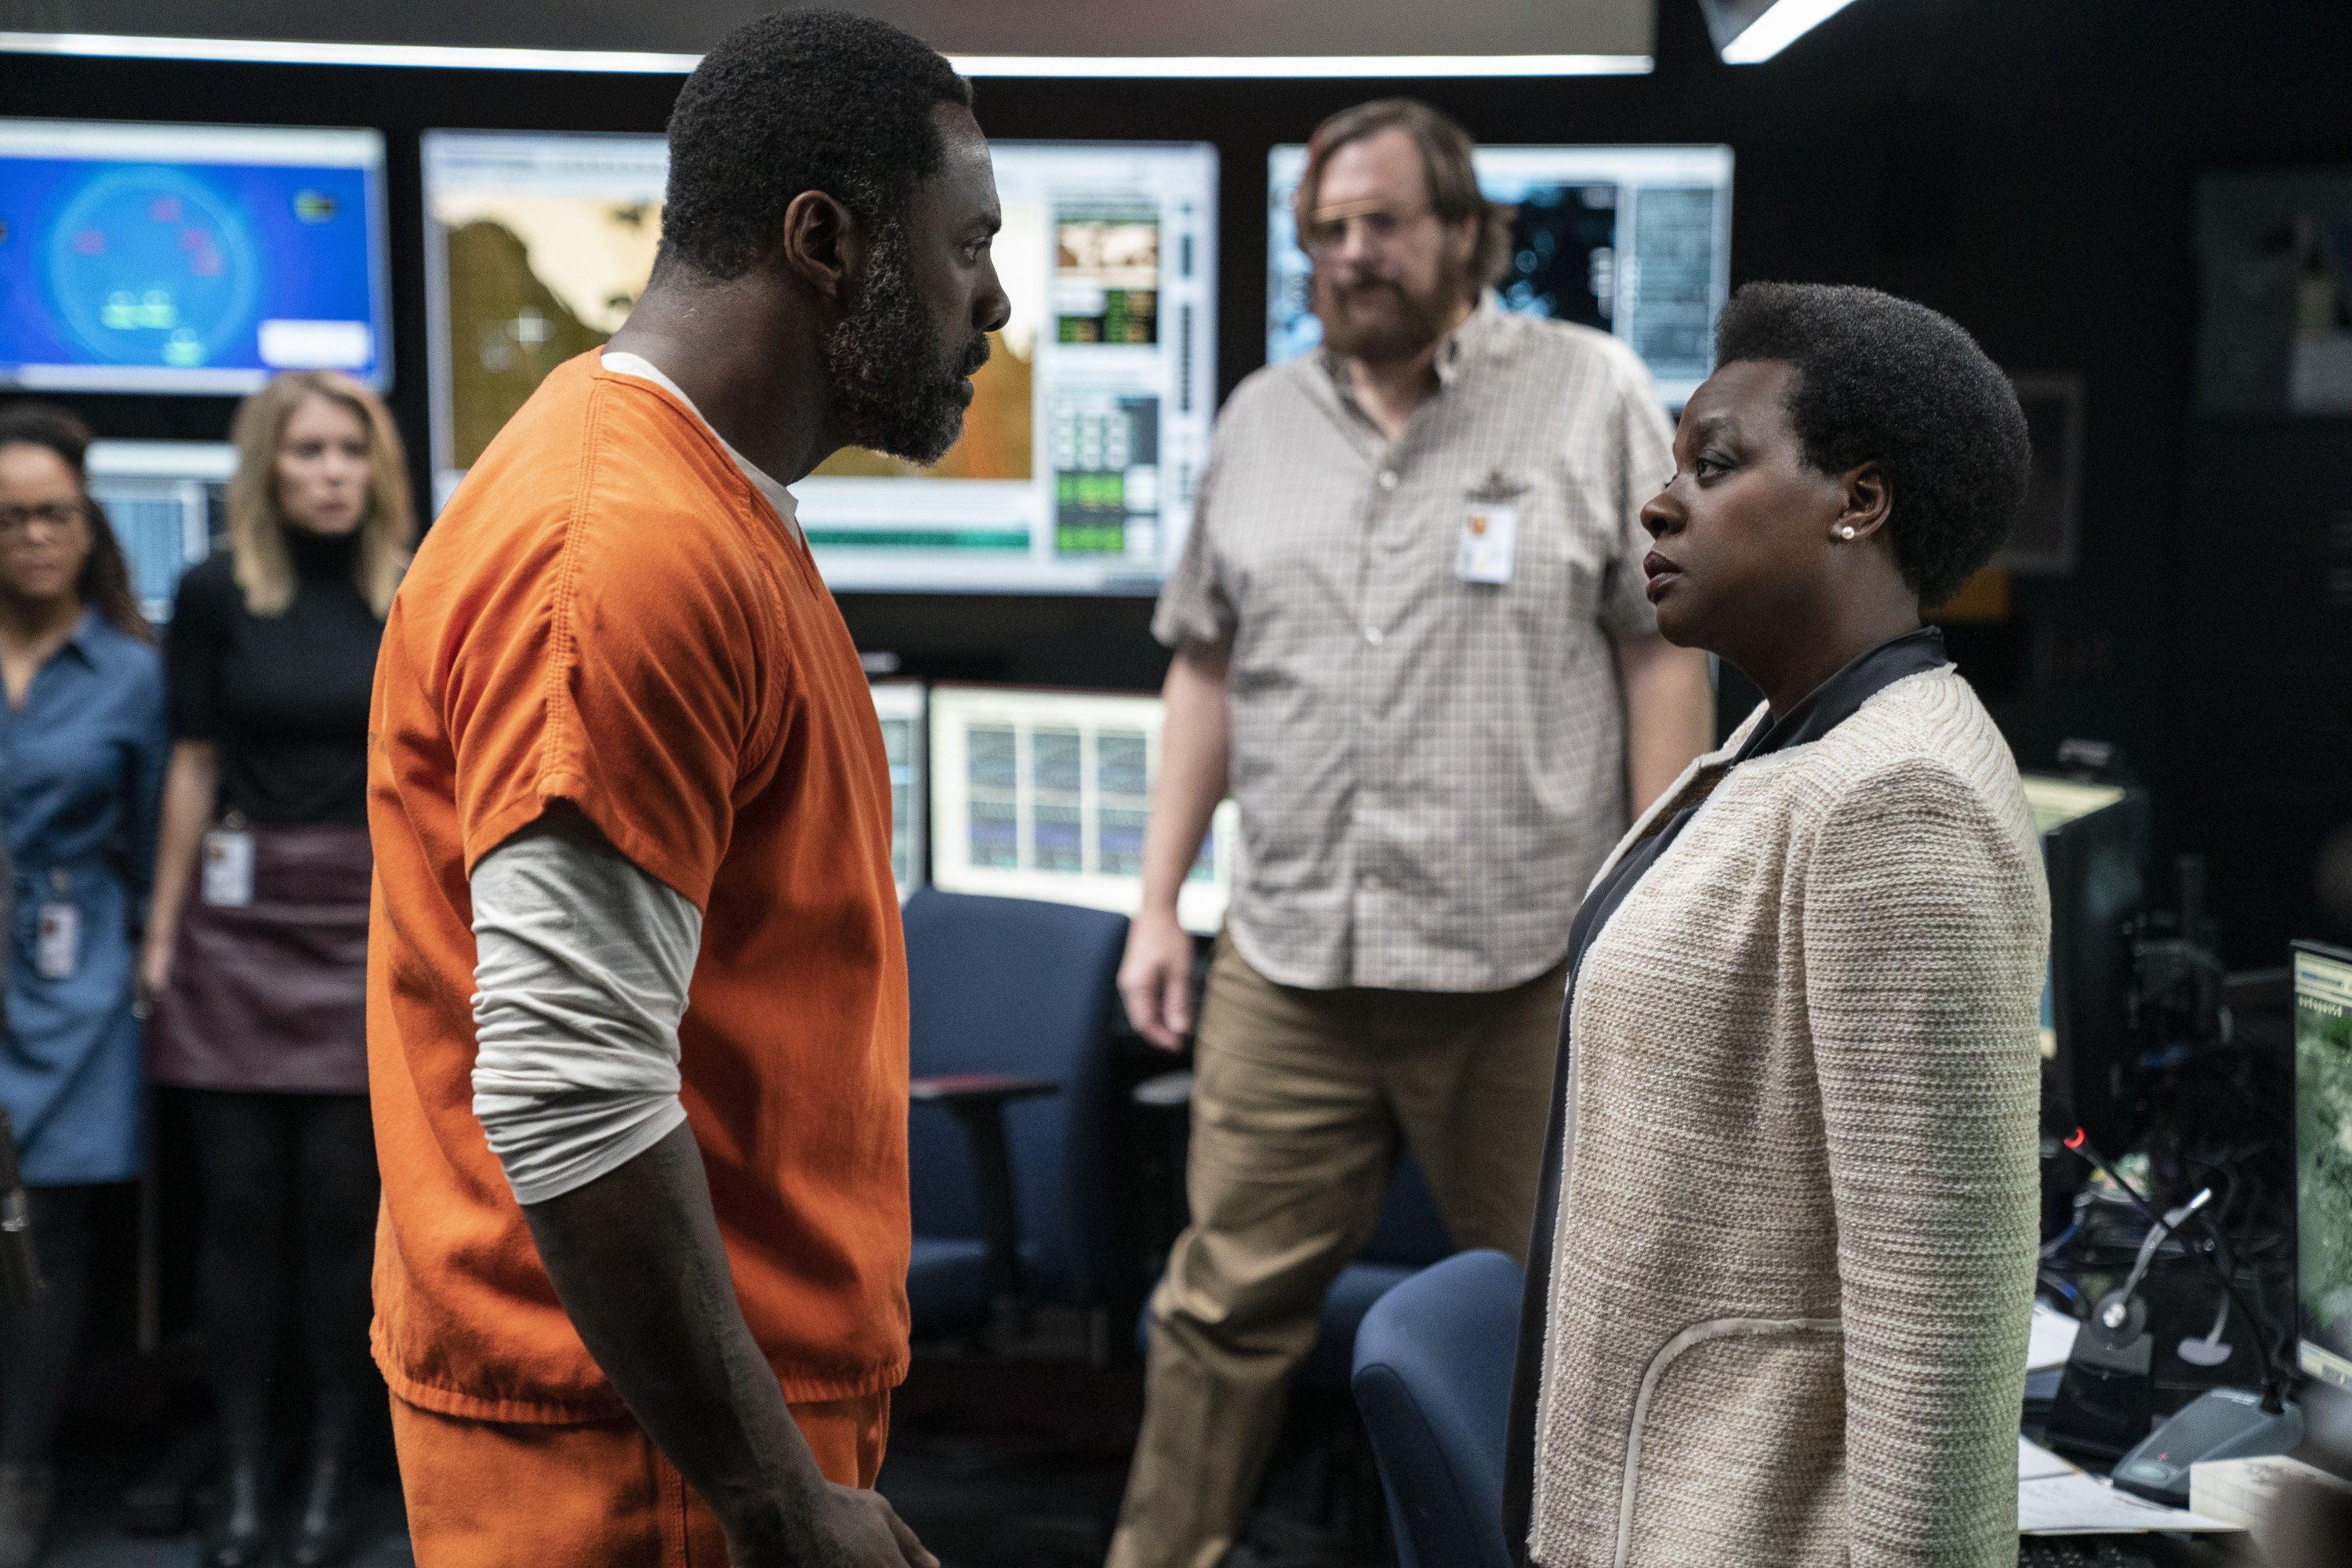 This image provided by Warner Bros. Pictures shows Idris Elba, left, and Viola Davis in a scene from 'The Suicide Squad.' (Warner Bros. Pictures via AP)